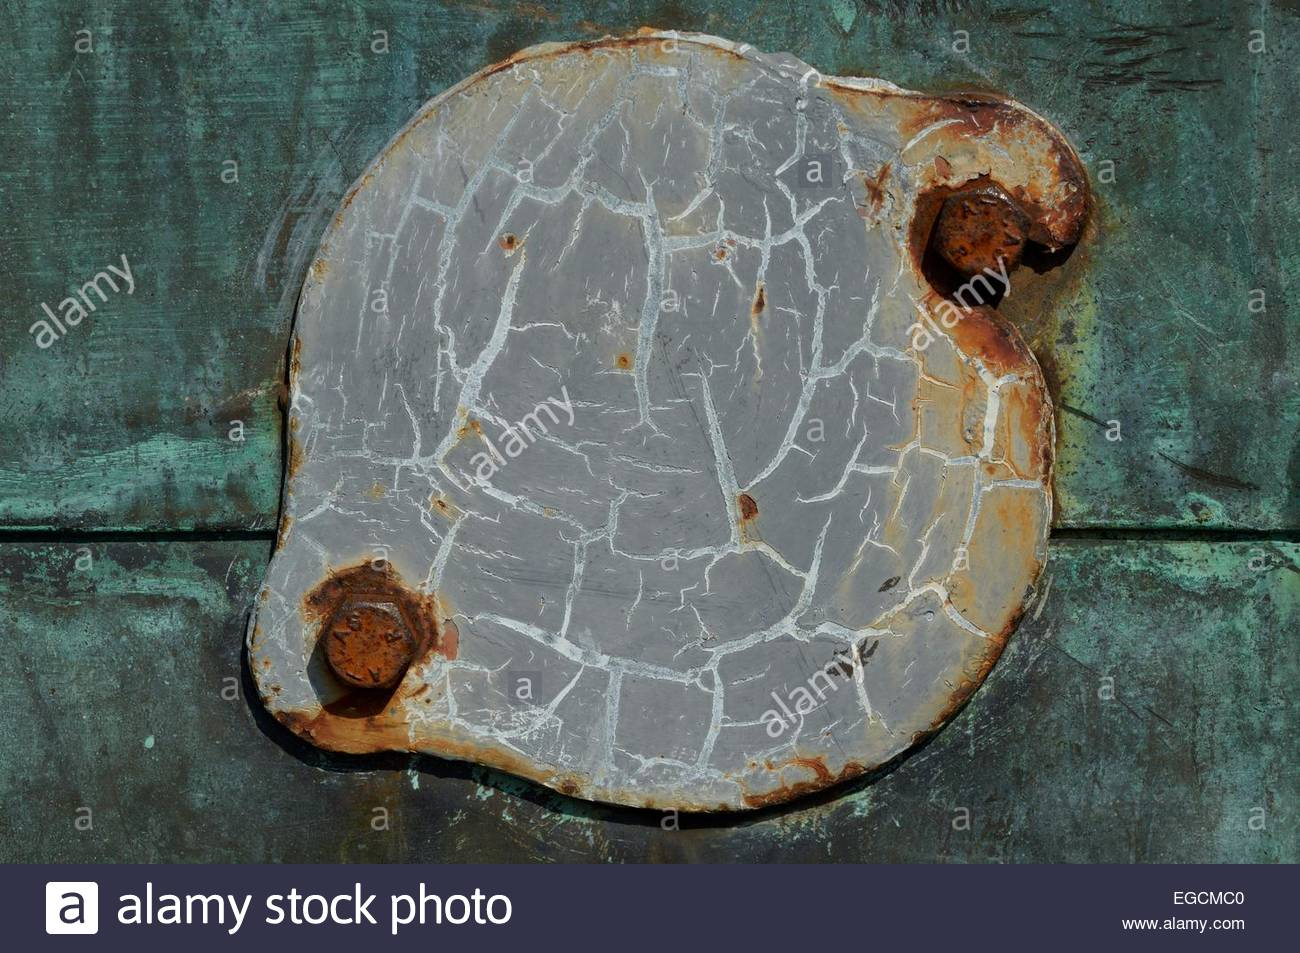 Close-up of  a movable metal plate on the Old Bridge, Poole, Dorset, England - Stock Image